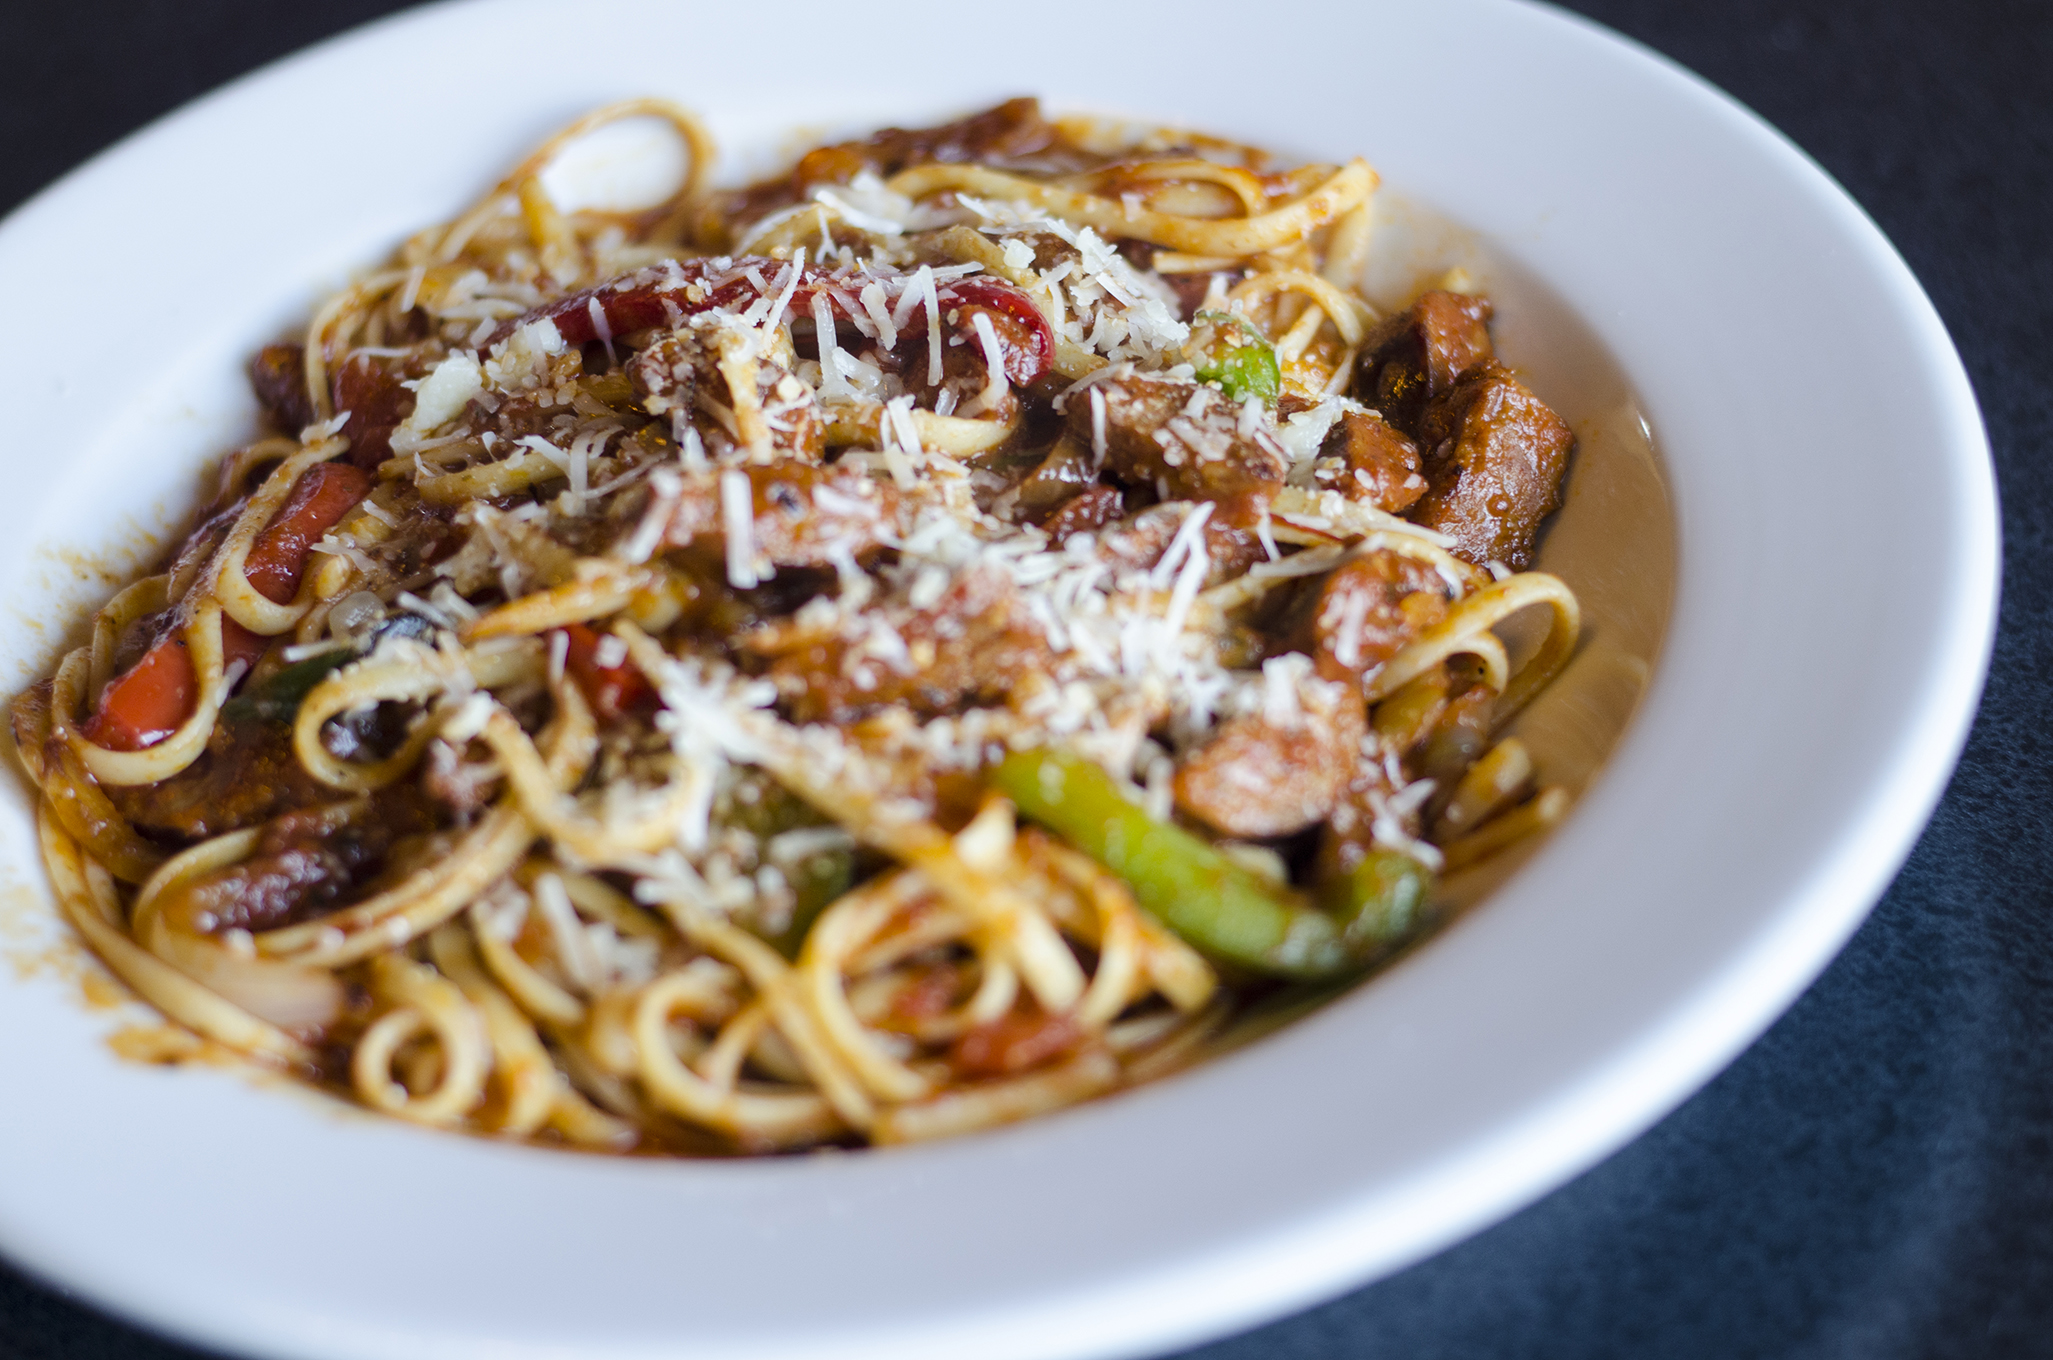 Sausage Pepper Linguine from Eastwood's Grill in Windsor, Ontario.